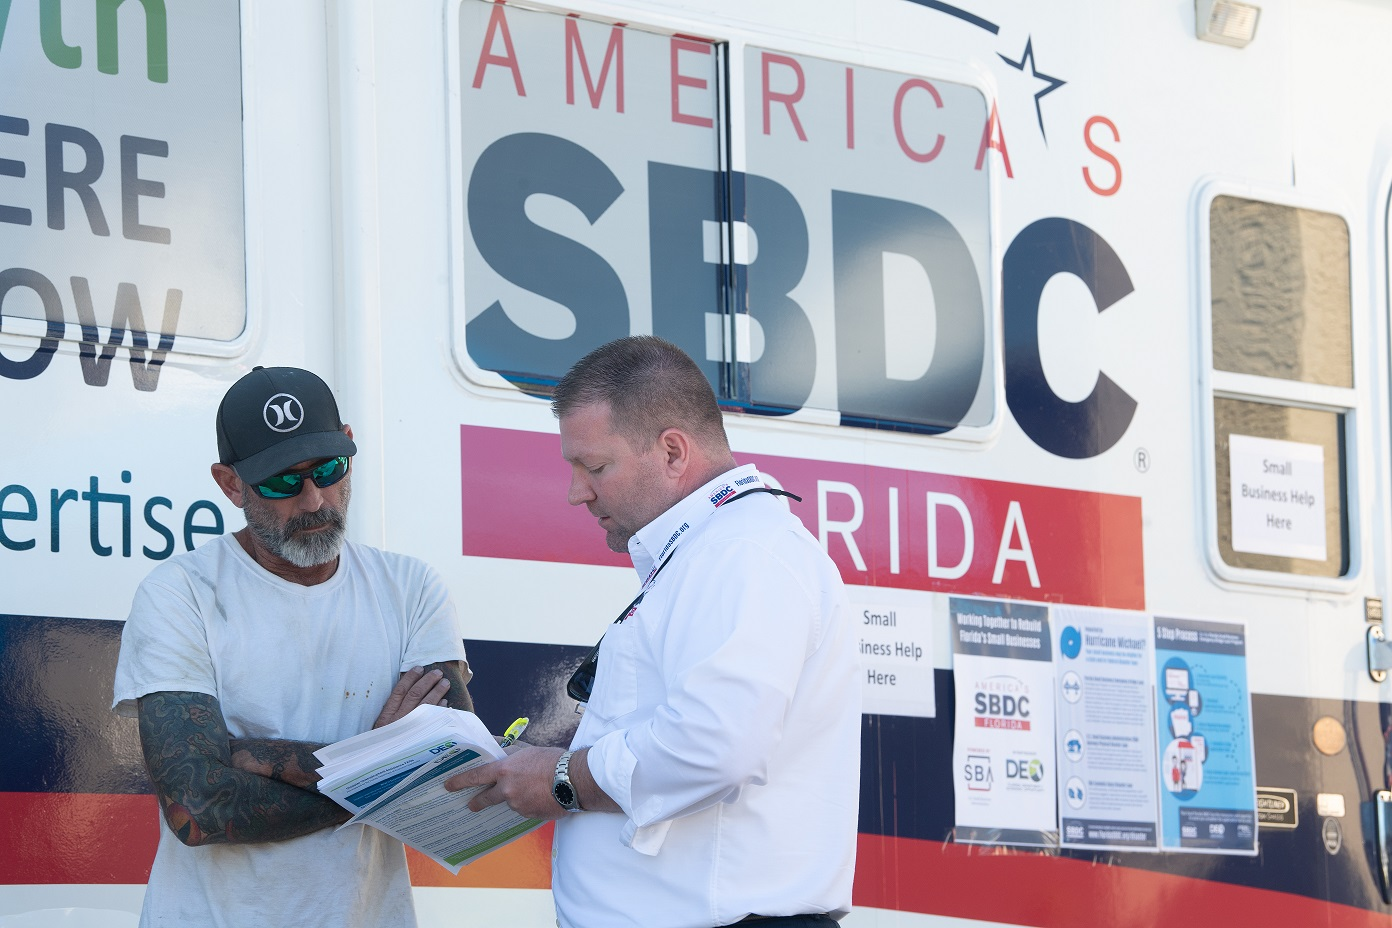 At the emergency response Mobile Assistance Center (MAC) Michael W. Myhre, CEO Florida SBDC Network, speaks with small business owner Robert Walker about getting help after Hurricane Michael hit Panama City, Florida.(Michael Spooneybarger/ Division of Research and Strategic Innovation)